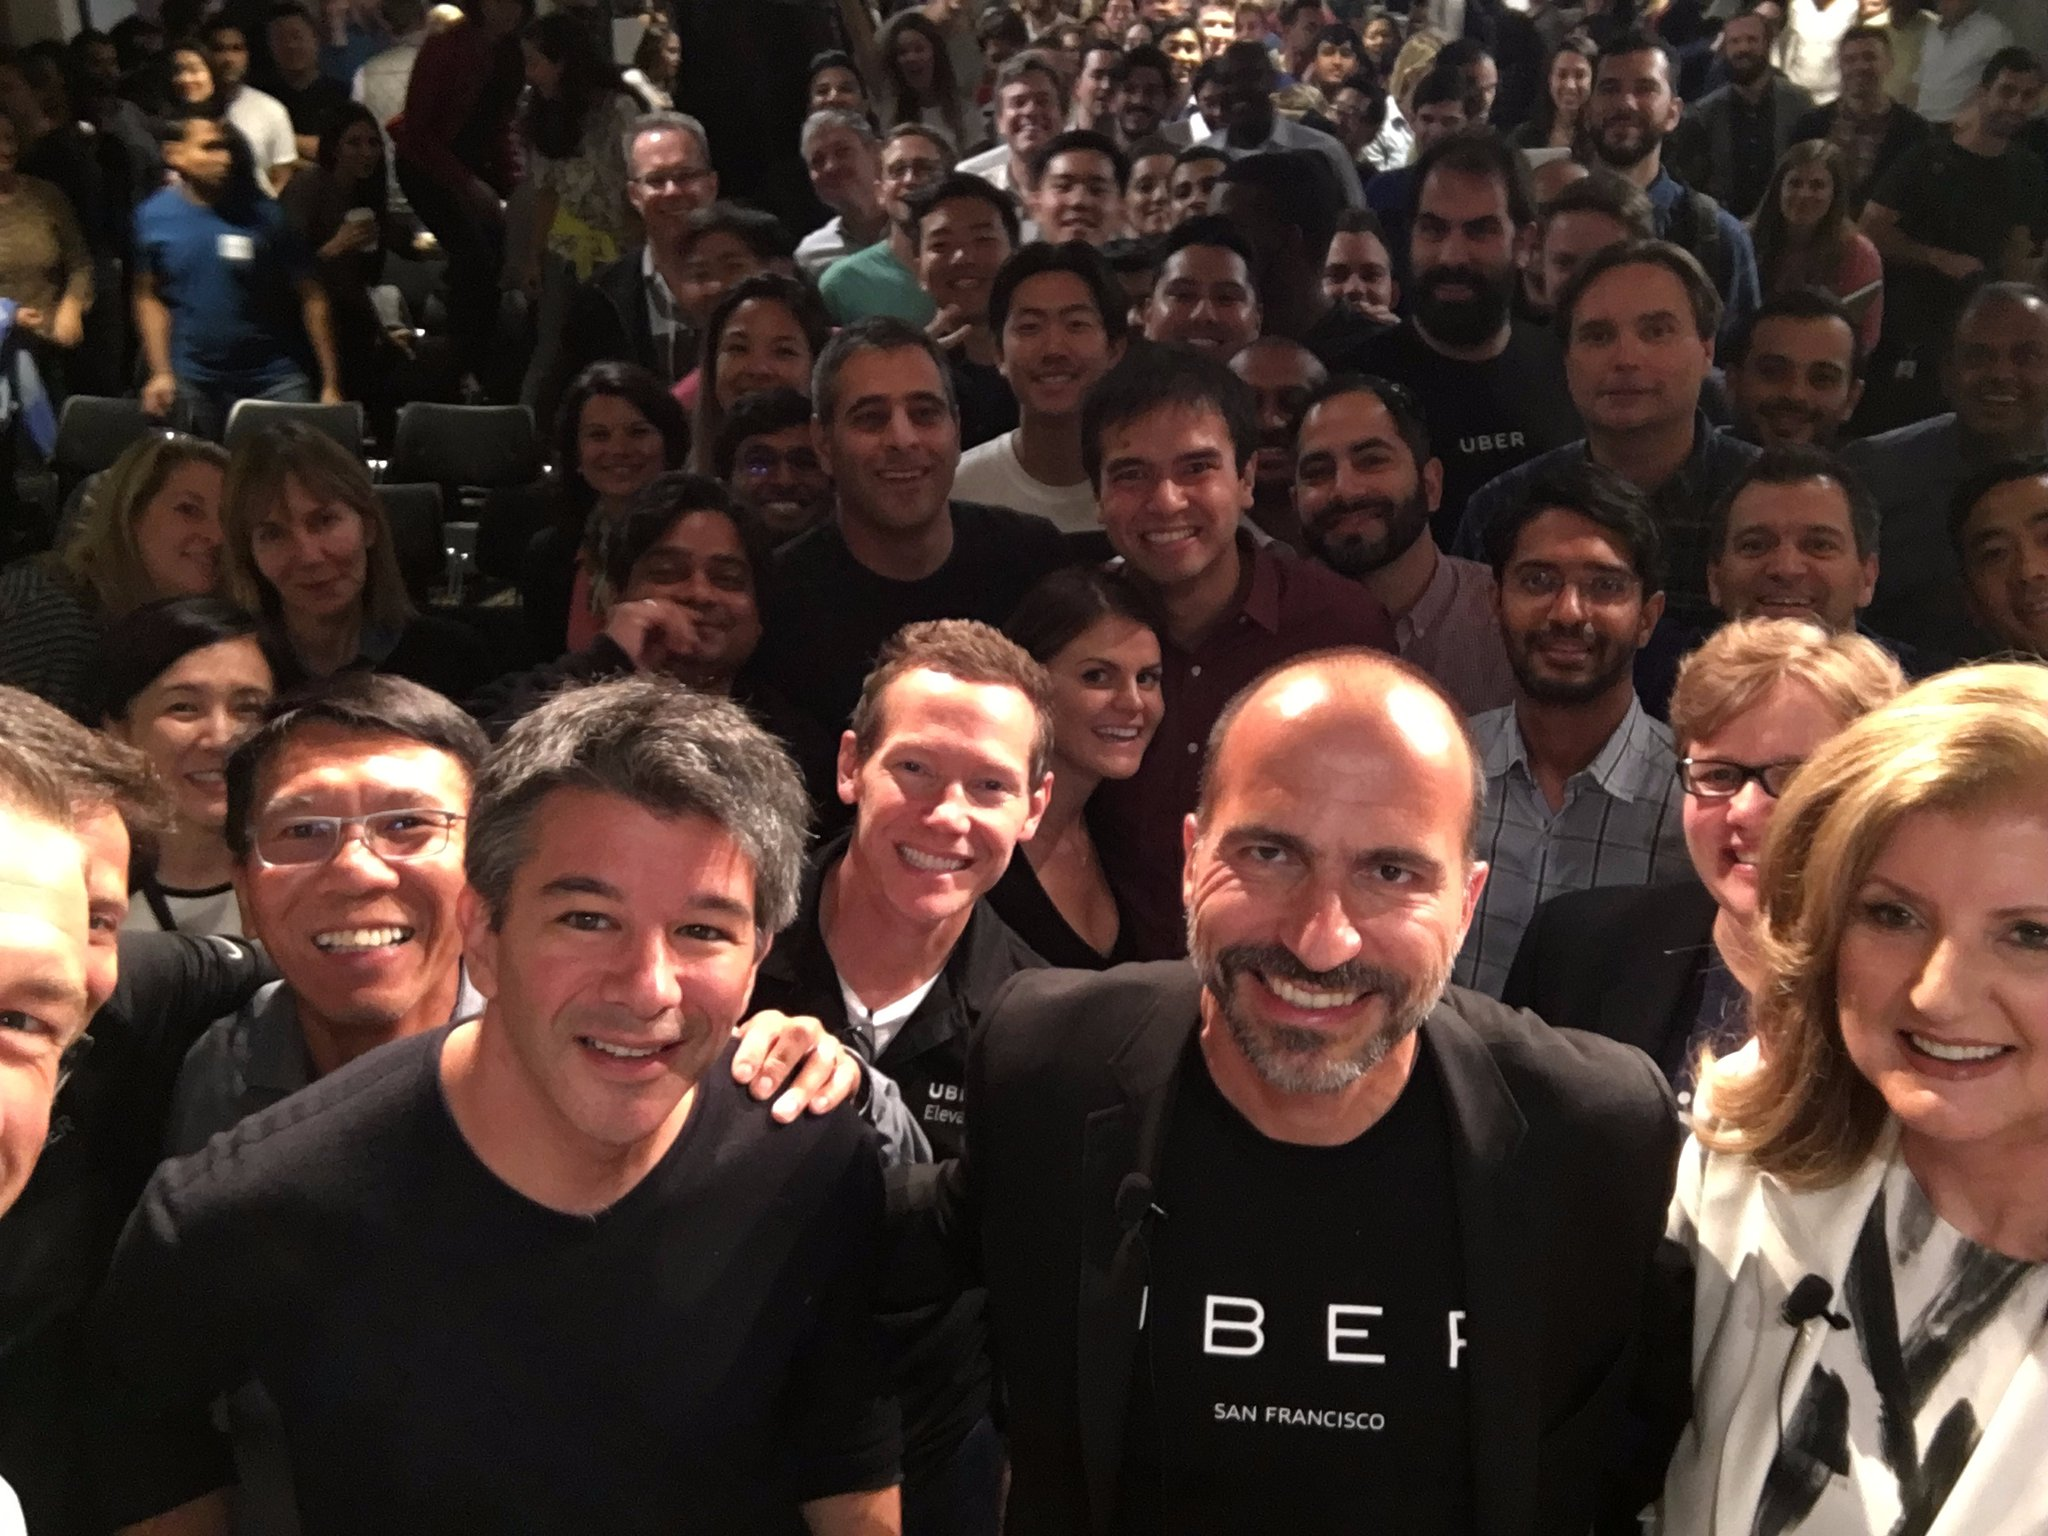 A selfie of Uber employees featuring former CEO Travis Kalanick, current CEO Dara Khosrowshahi and board member Arianna Huffington